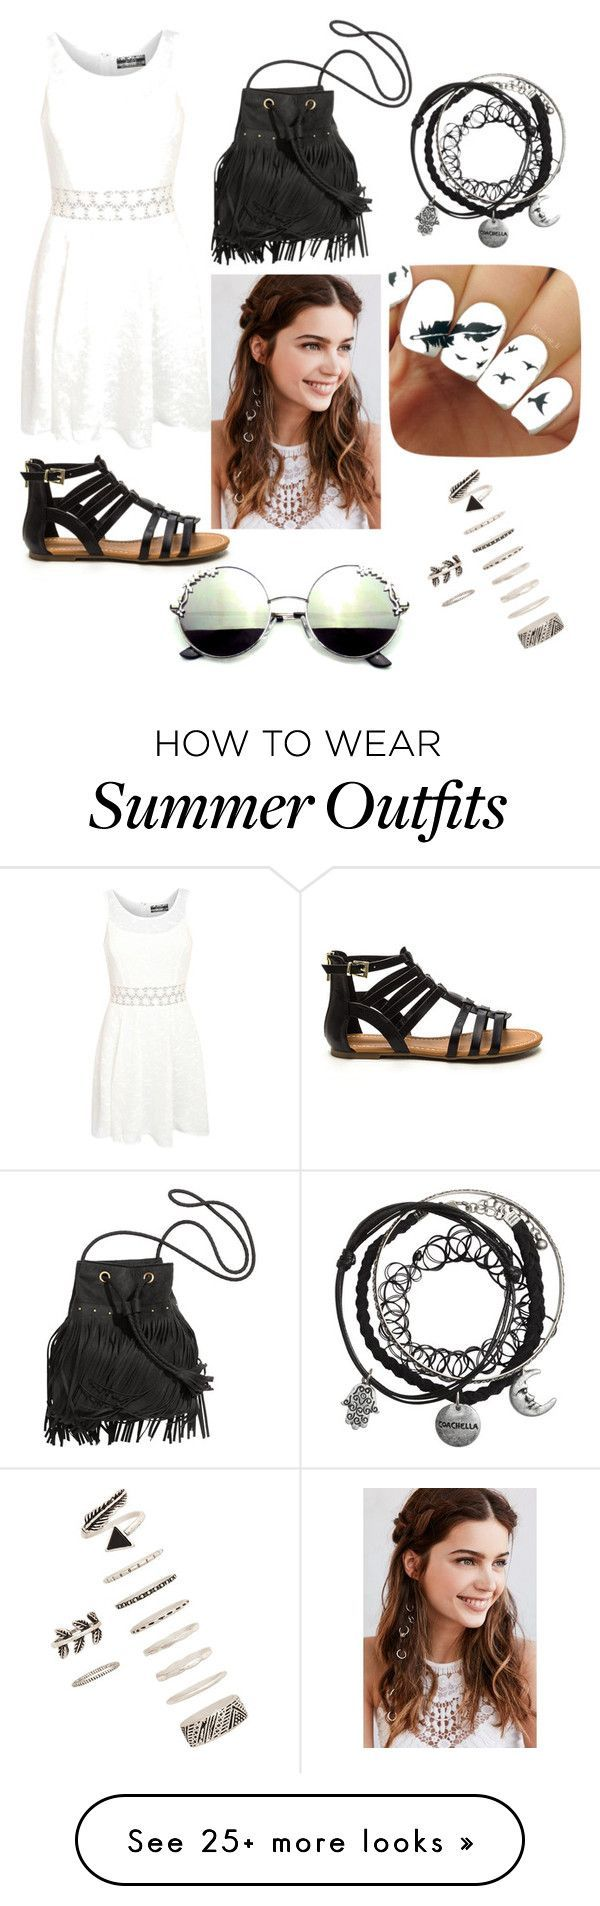 """Summer outfit"" by cayla-dart on Polyvore featuring Pilot, REGALROSE and Forever 21"